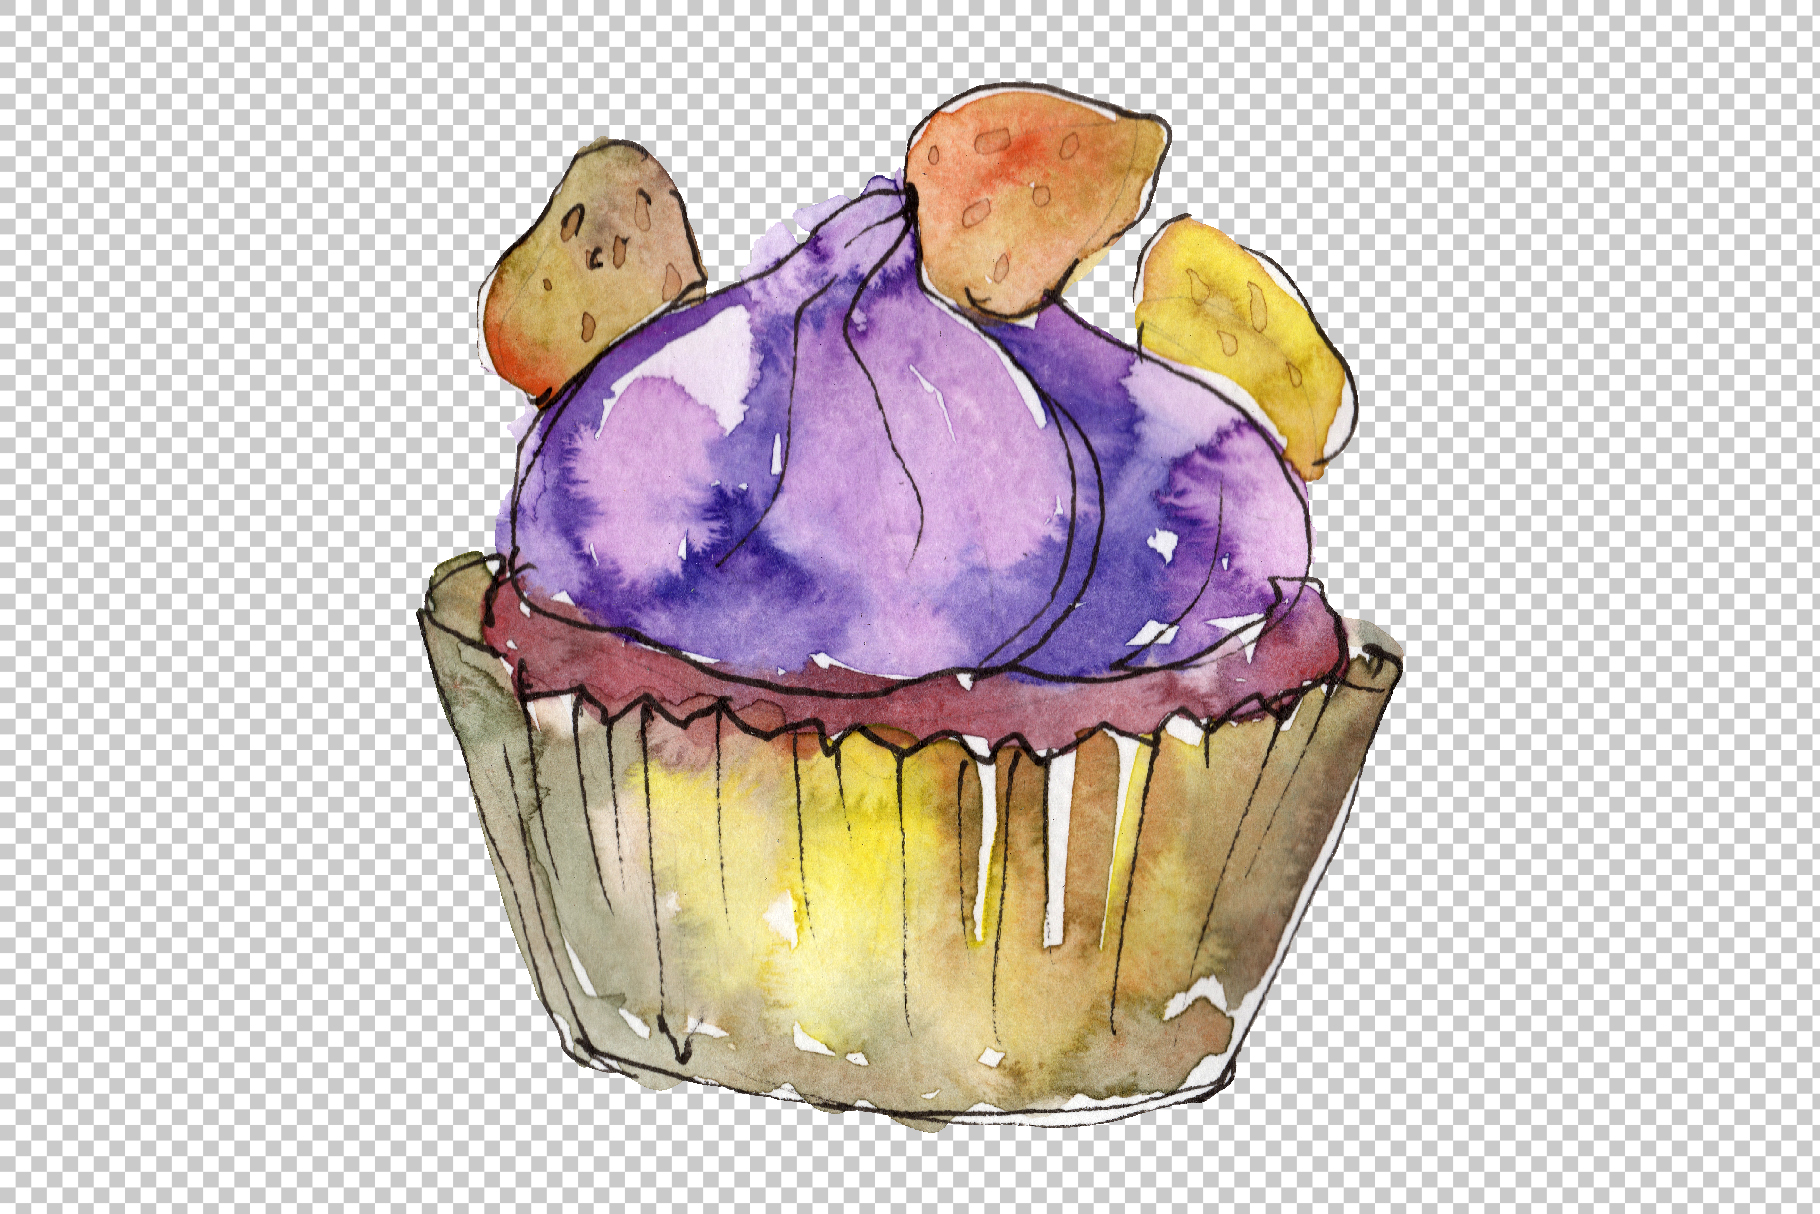 Dessert Love story Watercolor png example image 5